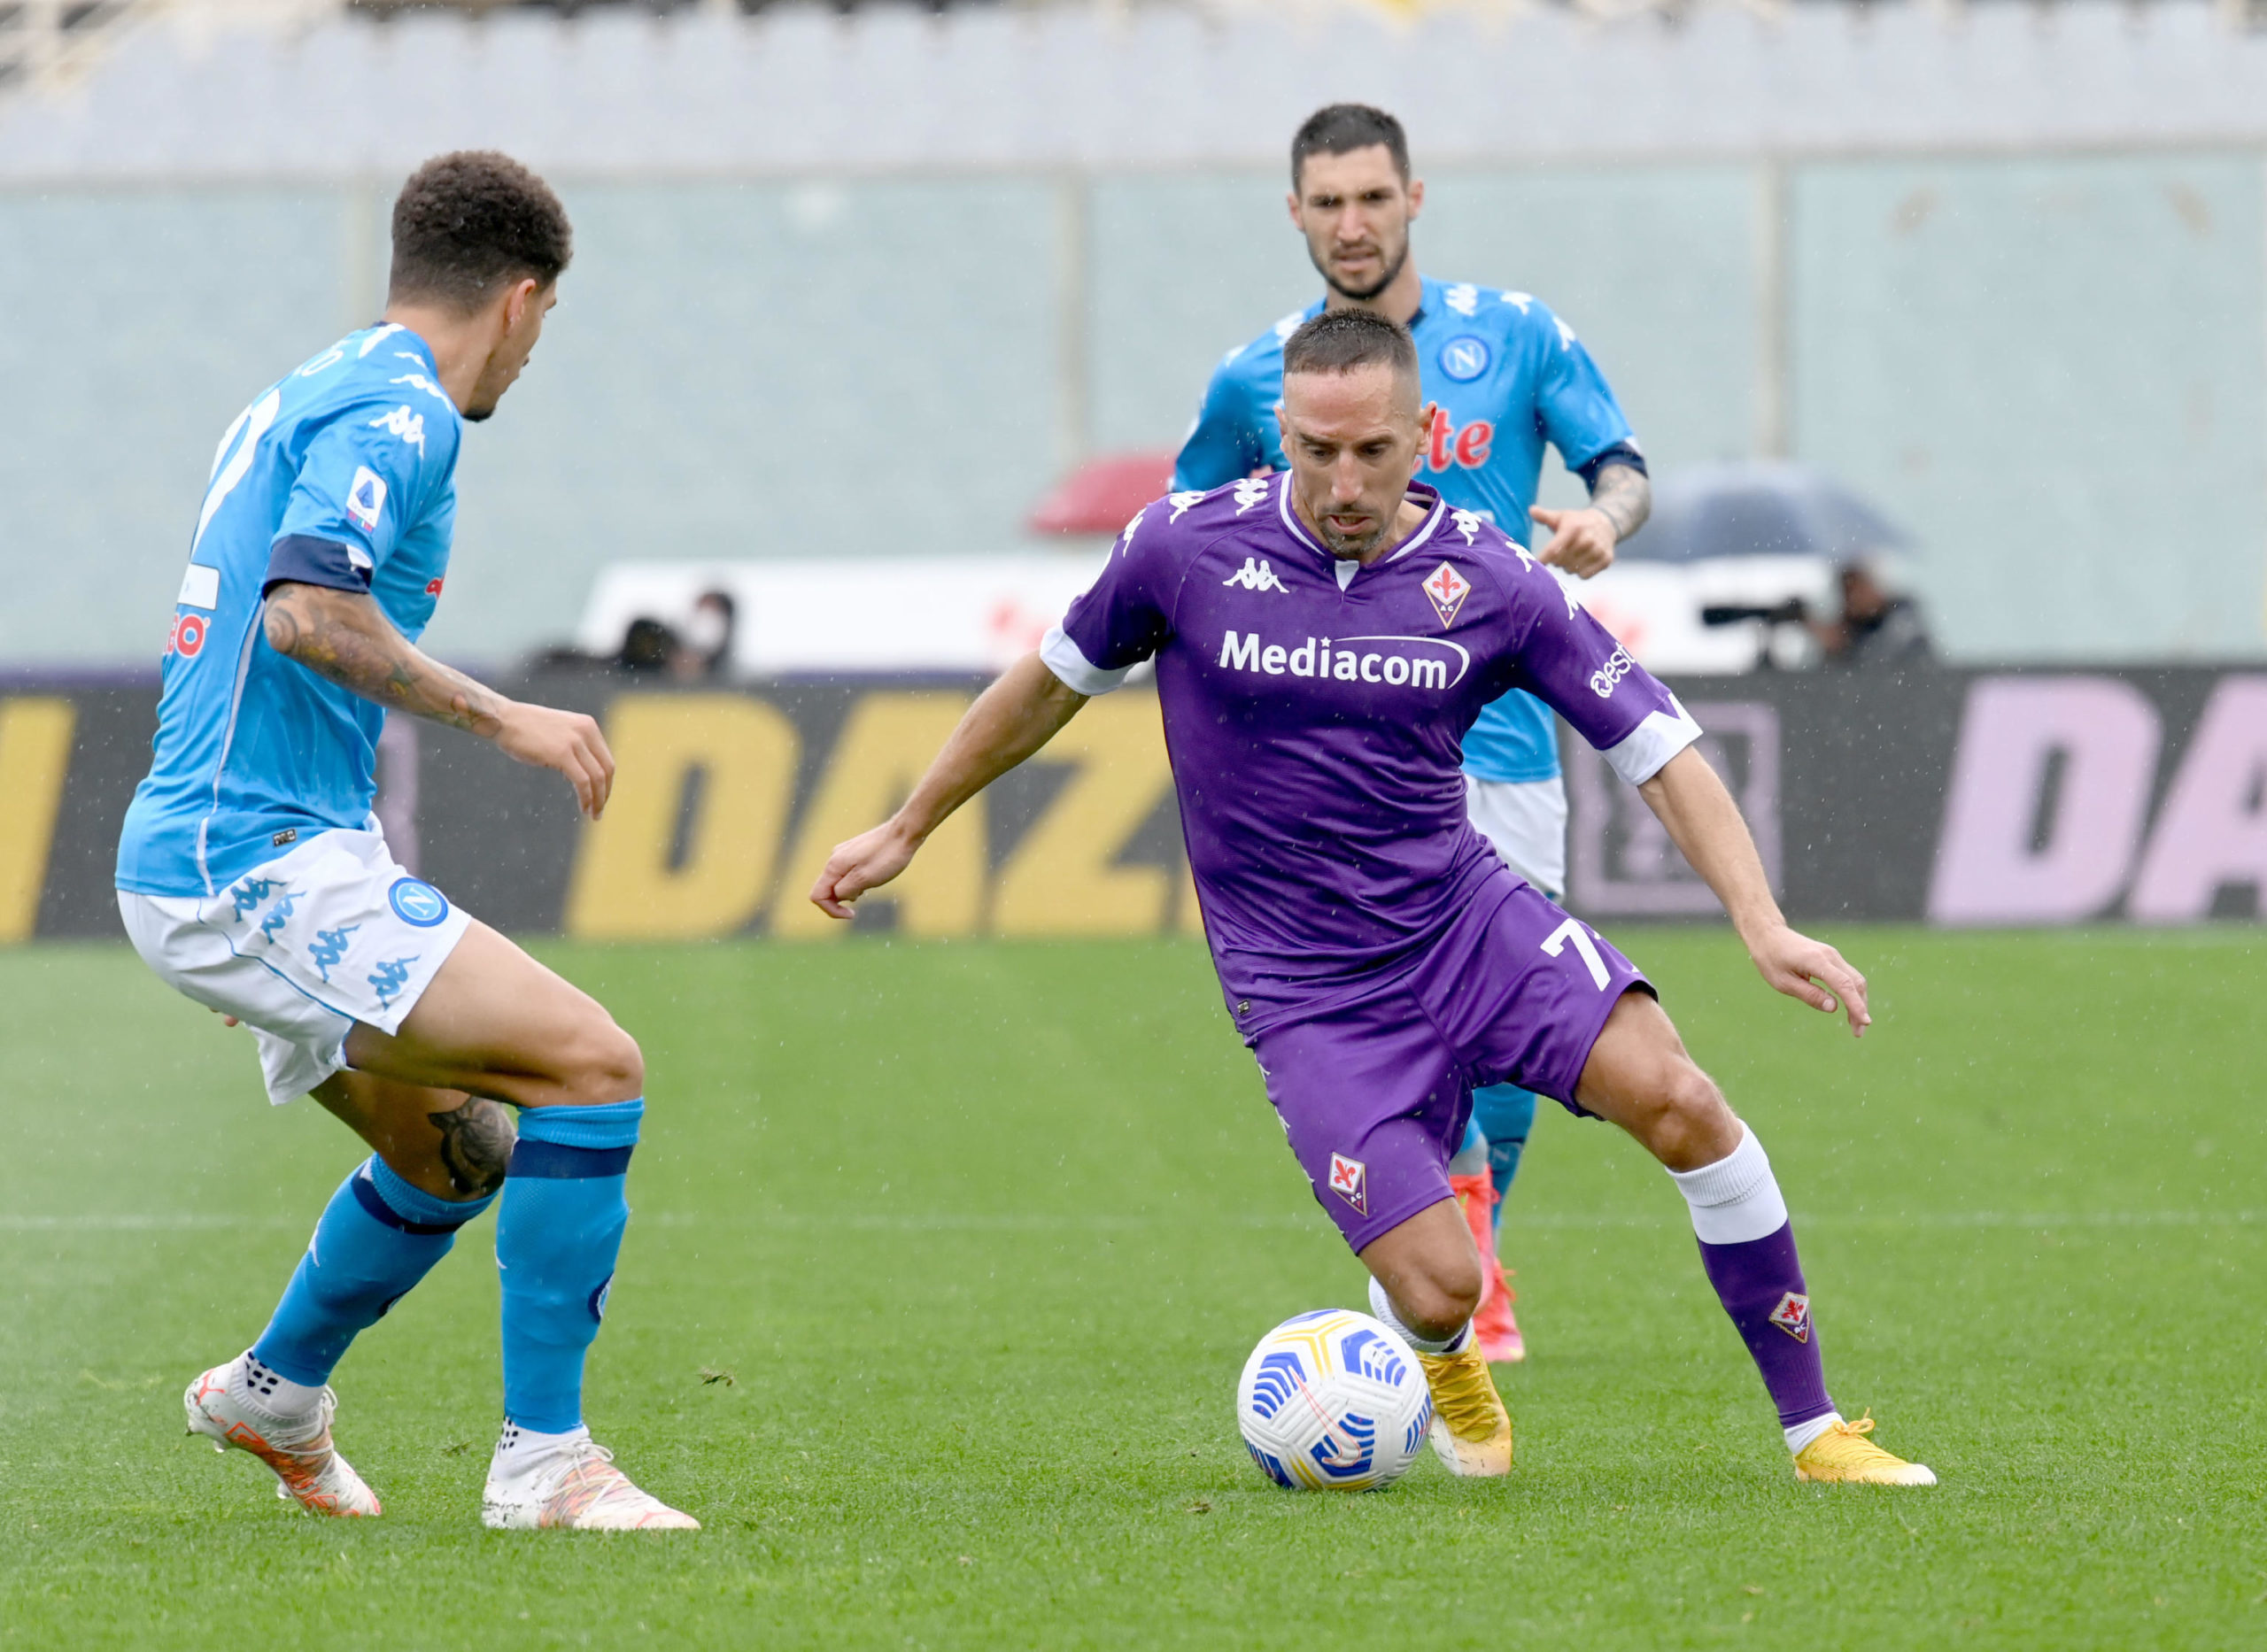 Franck Ribery in action for Fiorentina against Napoli